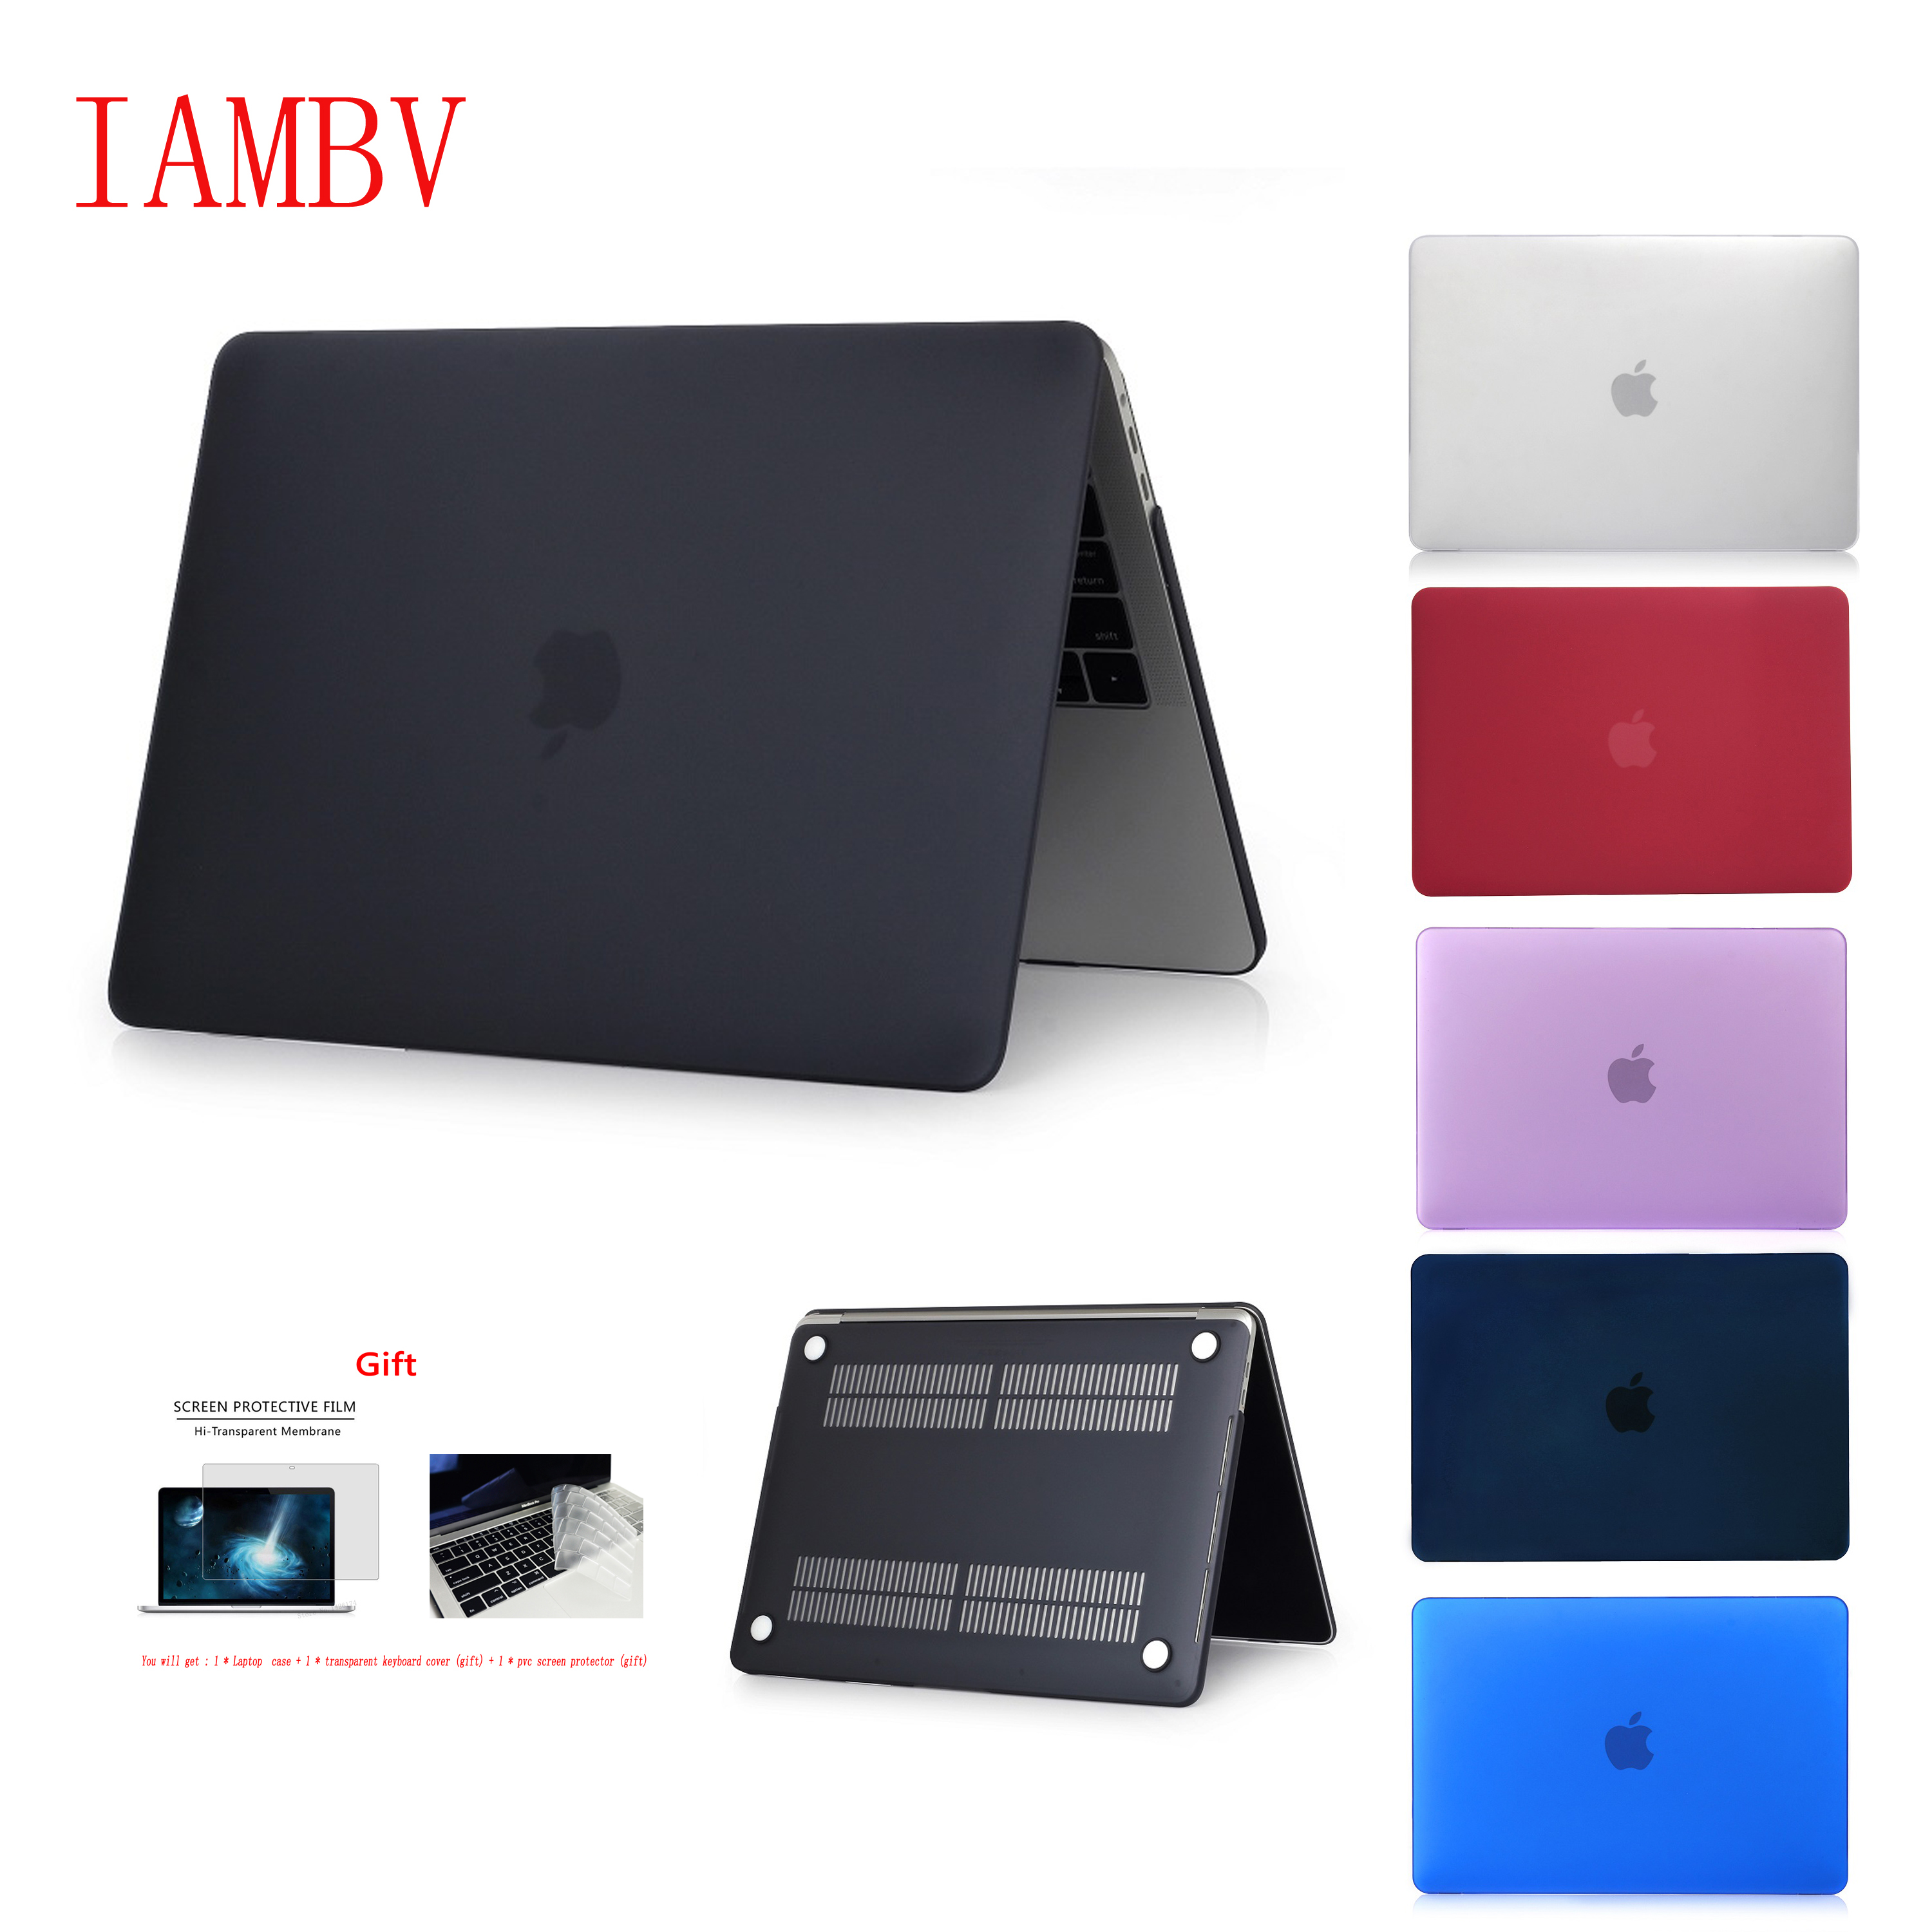 Crystal\Matte Case For Apple Macbook Air Pro Retina 11 12 13 15 16,for Pro 13 15.4 16 inch With Touch BarA1932 New ProA2141+Gift